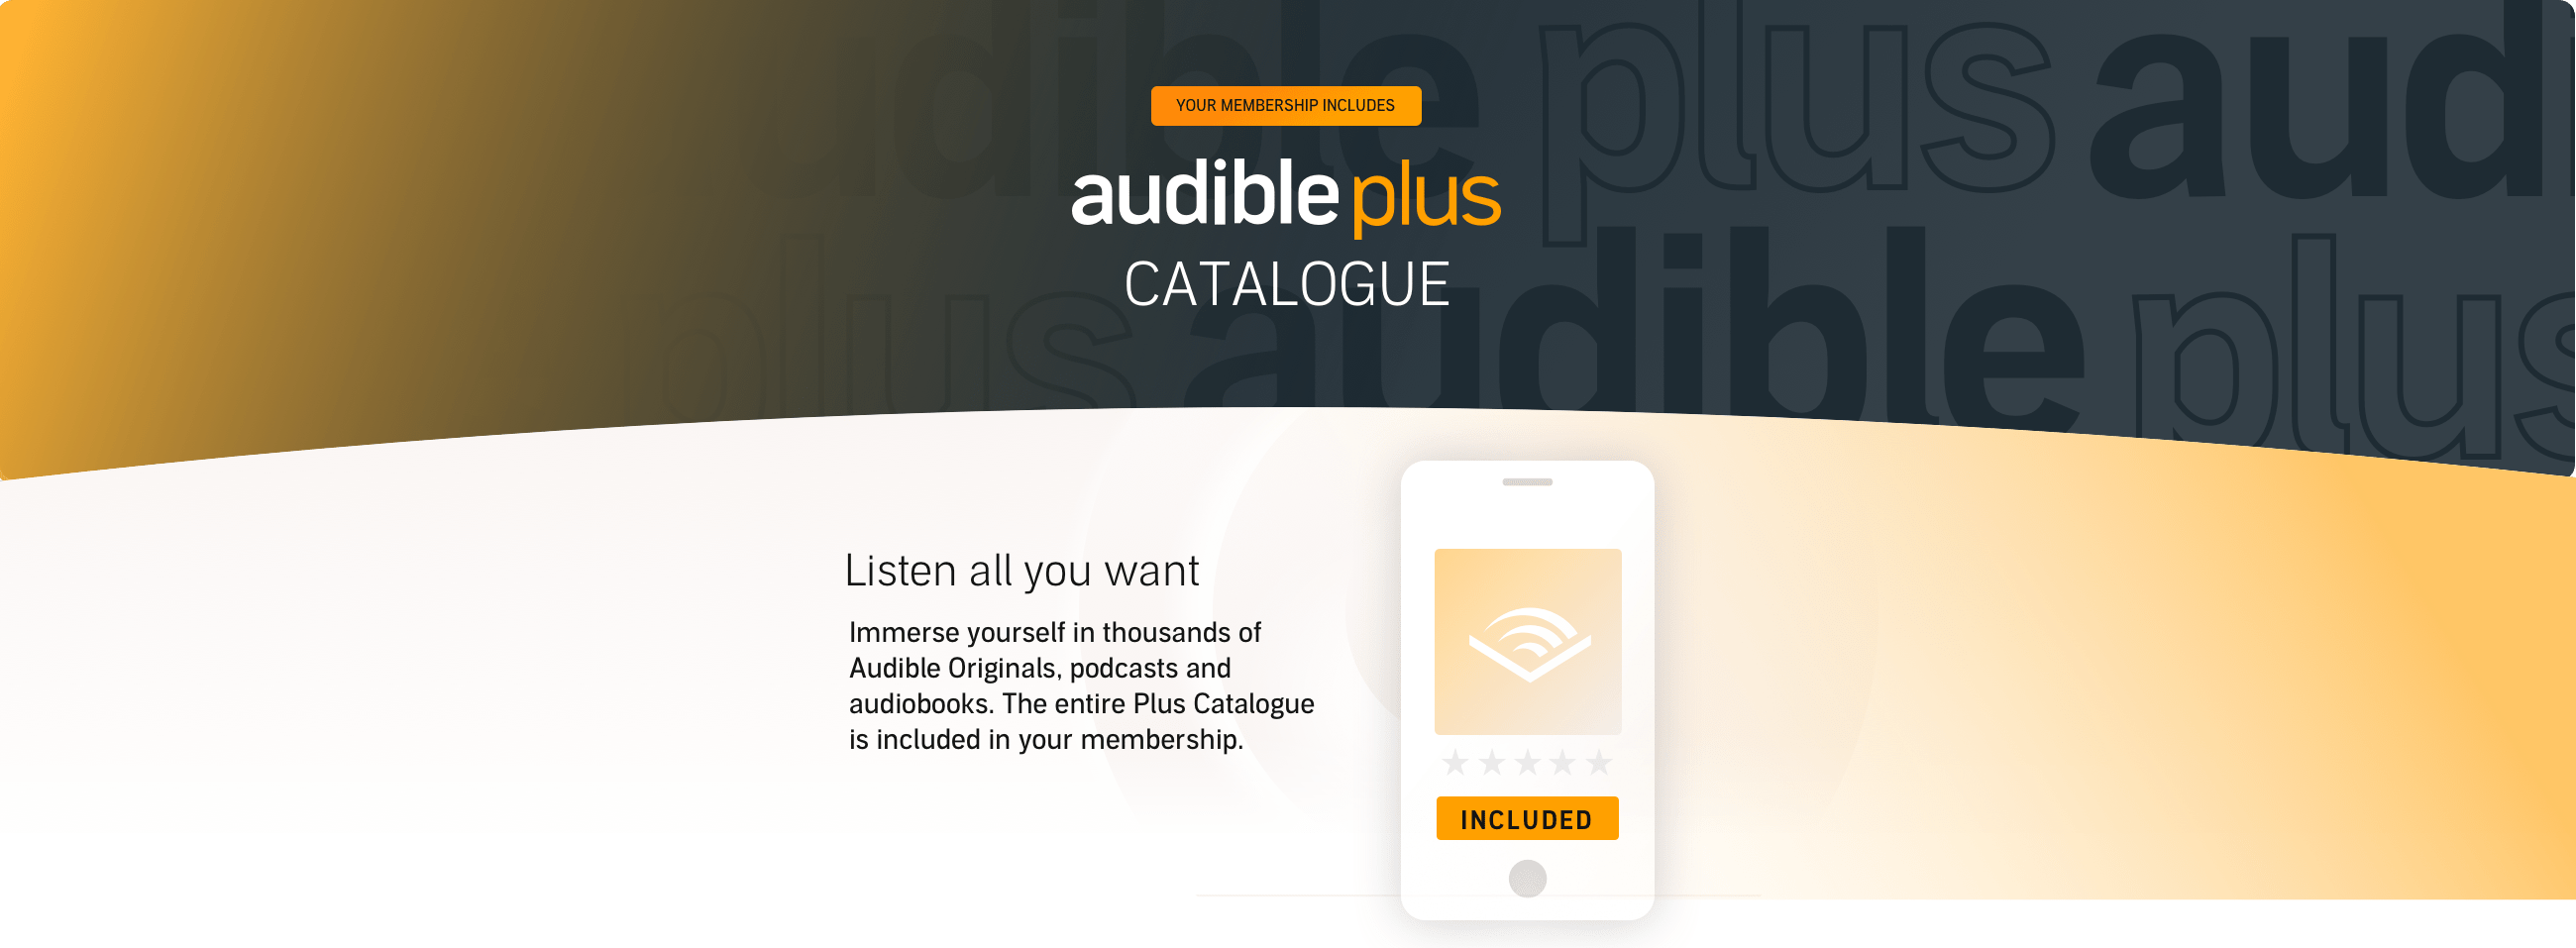 Immerse yourself in thousands of Audible Originals, podcasts and audiobooks. The entire Plus Catalogue is included in your membership.